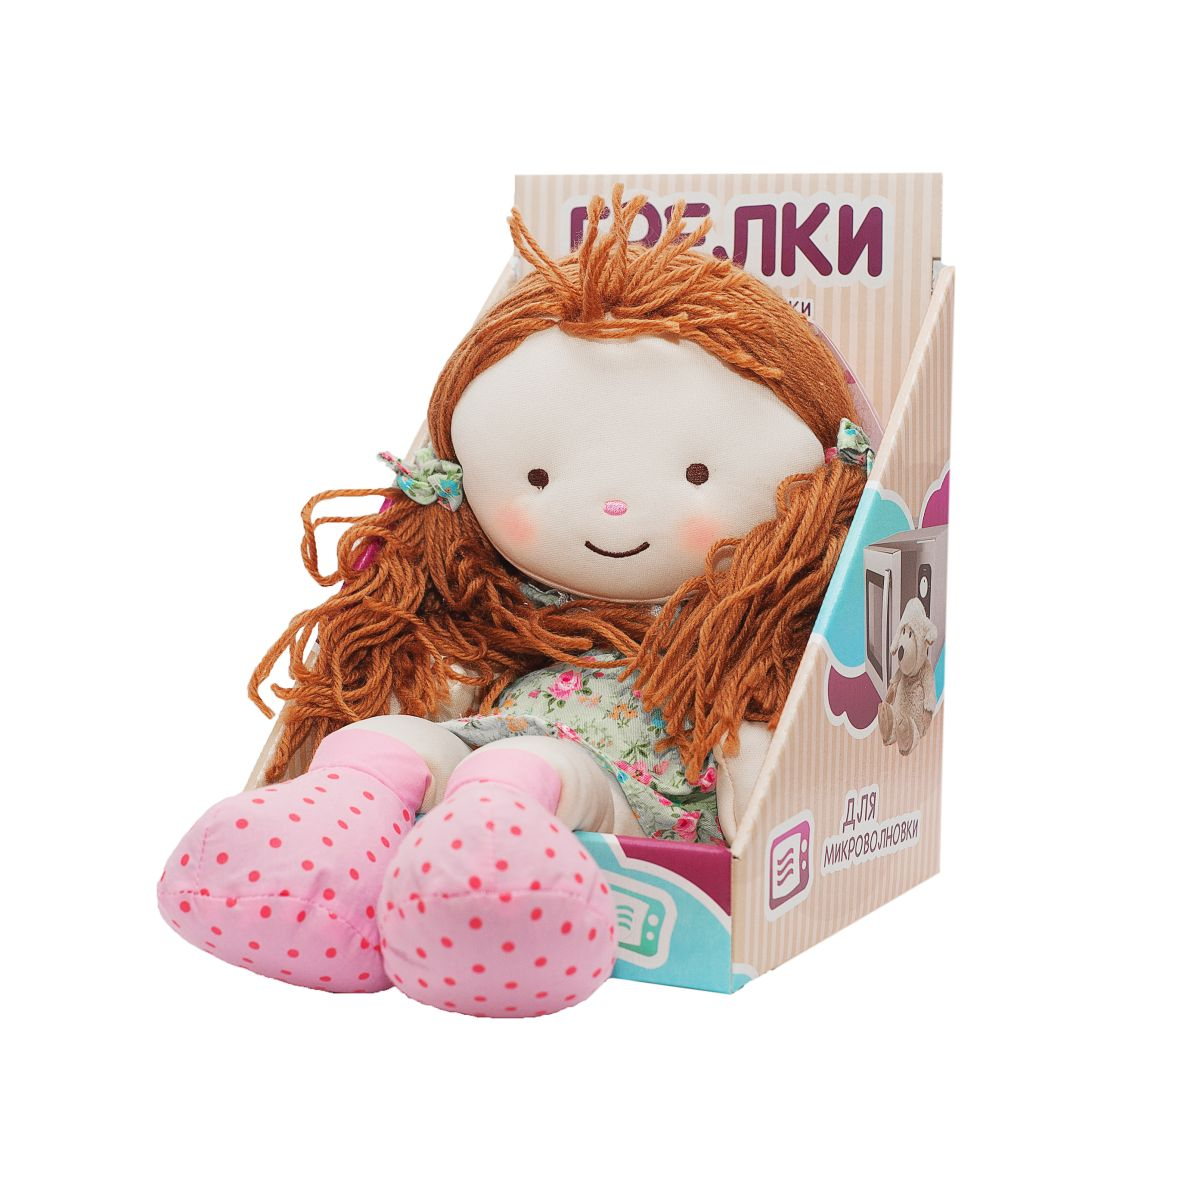 Пинкл (Pinkl) | Кукла-грелка Элли | Ellie Warmheart Heatable Rag Doll